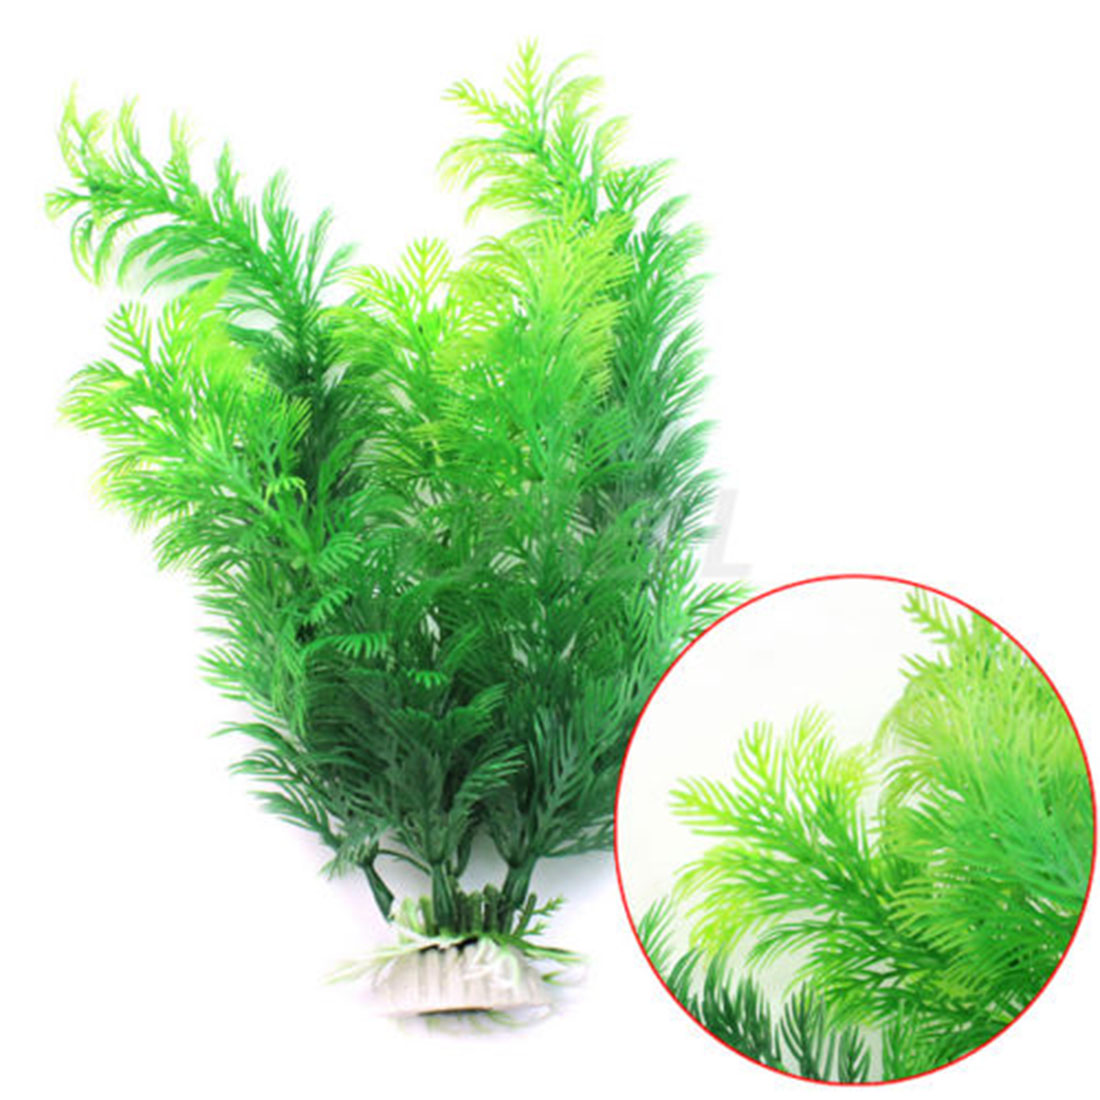 Fish tank in spanish - Submarine Ornament Artificial Green Underwater Plant Fish Tank Aquarium Decor China Mainland